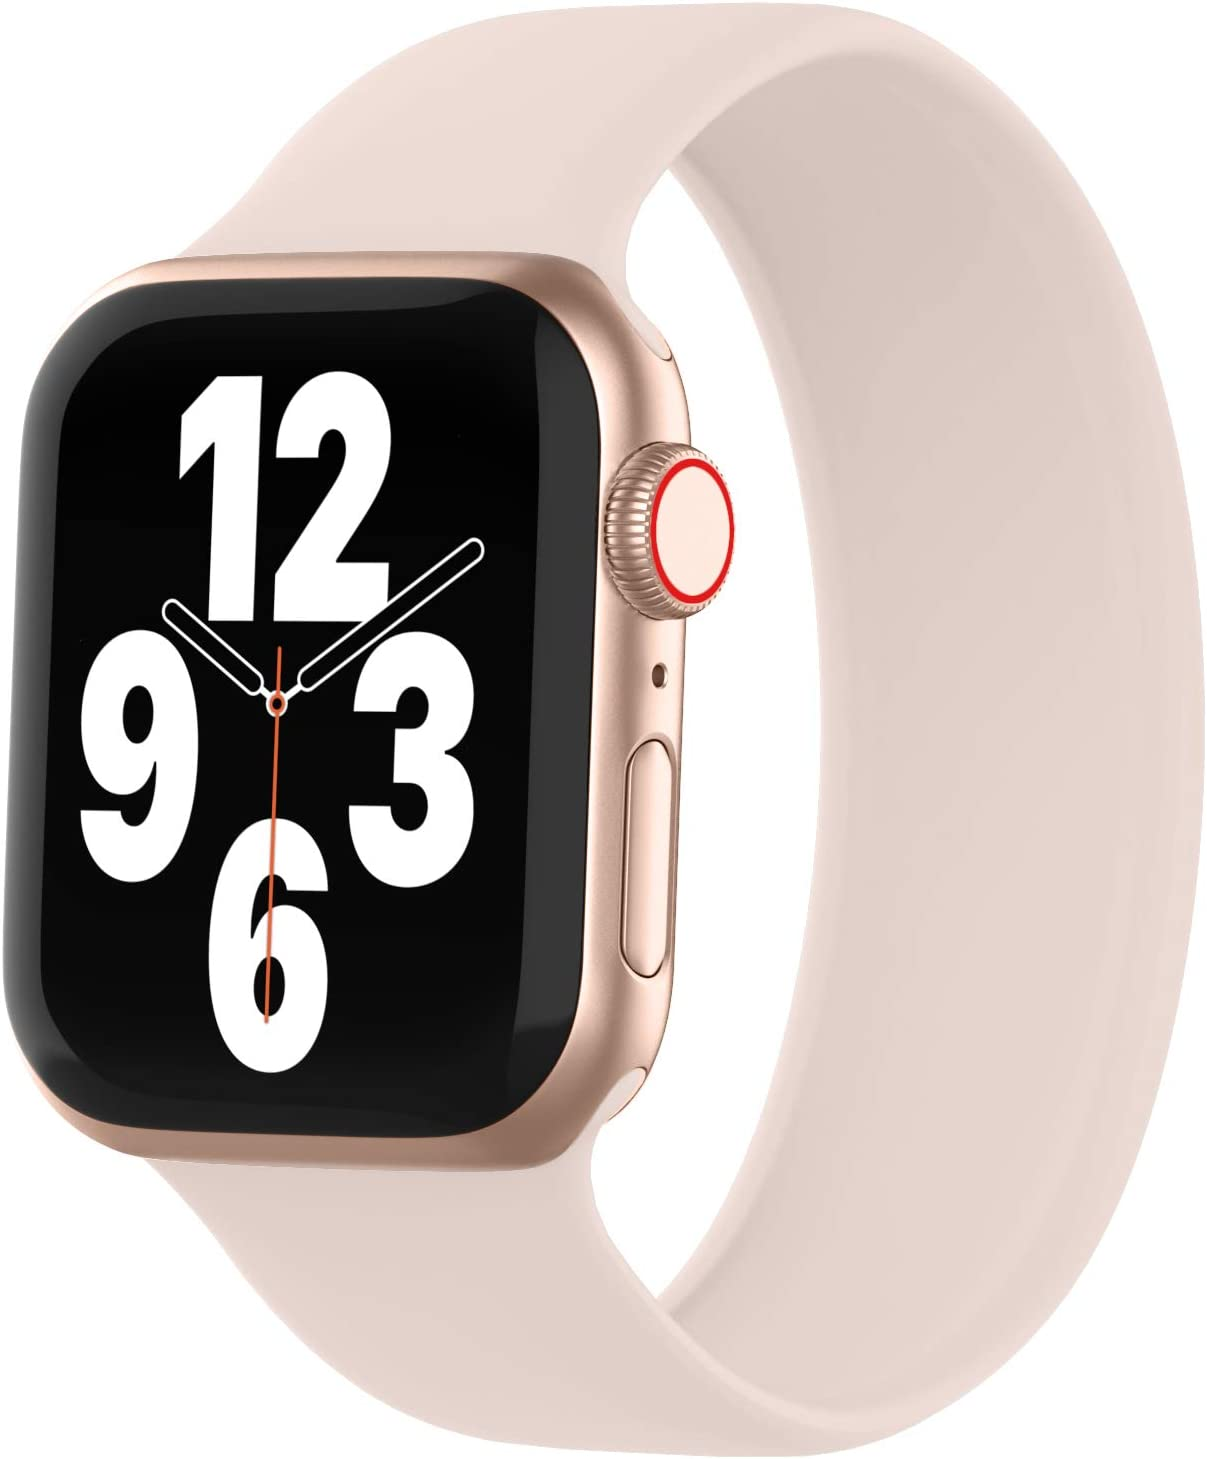 WASPO Solo Loop Band Compatible with Apple Watch Band 38mm 40mm 42mm 44mm, sport Elastic Silicone Bands with no Clasps or buckles Compatible for iWatch Series 6/SE/5/4/3/2/1(38mm/40mm-S, Pink Sand)